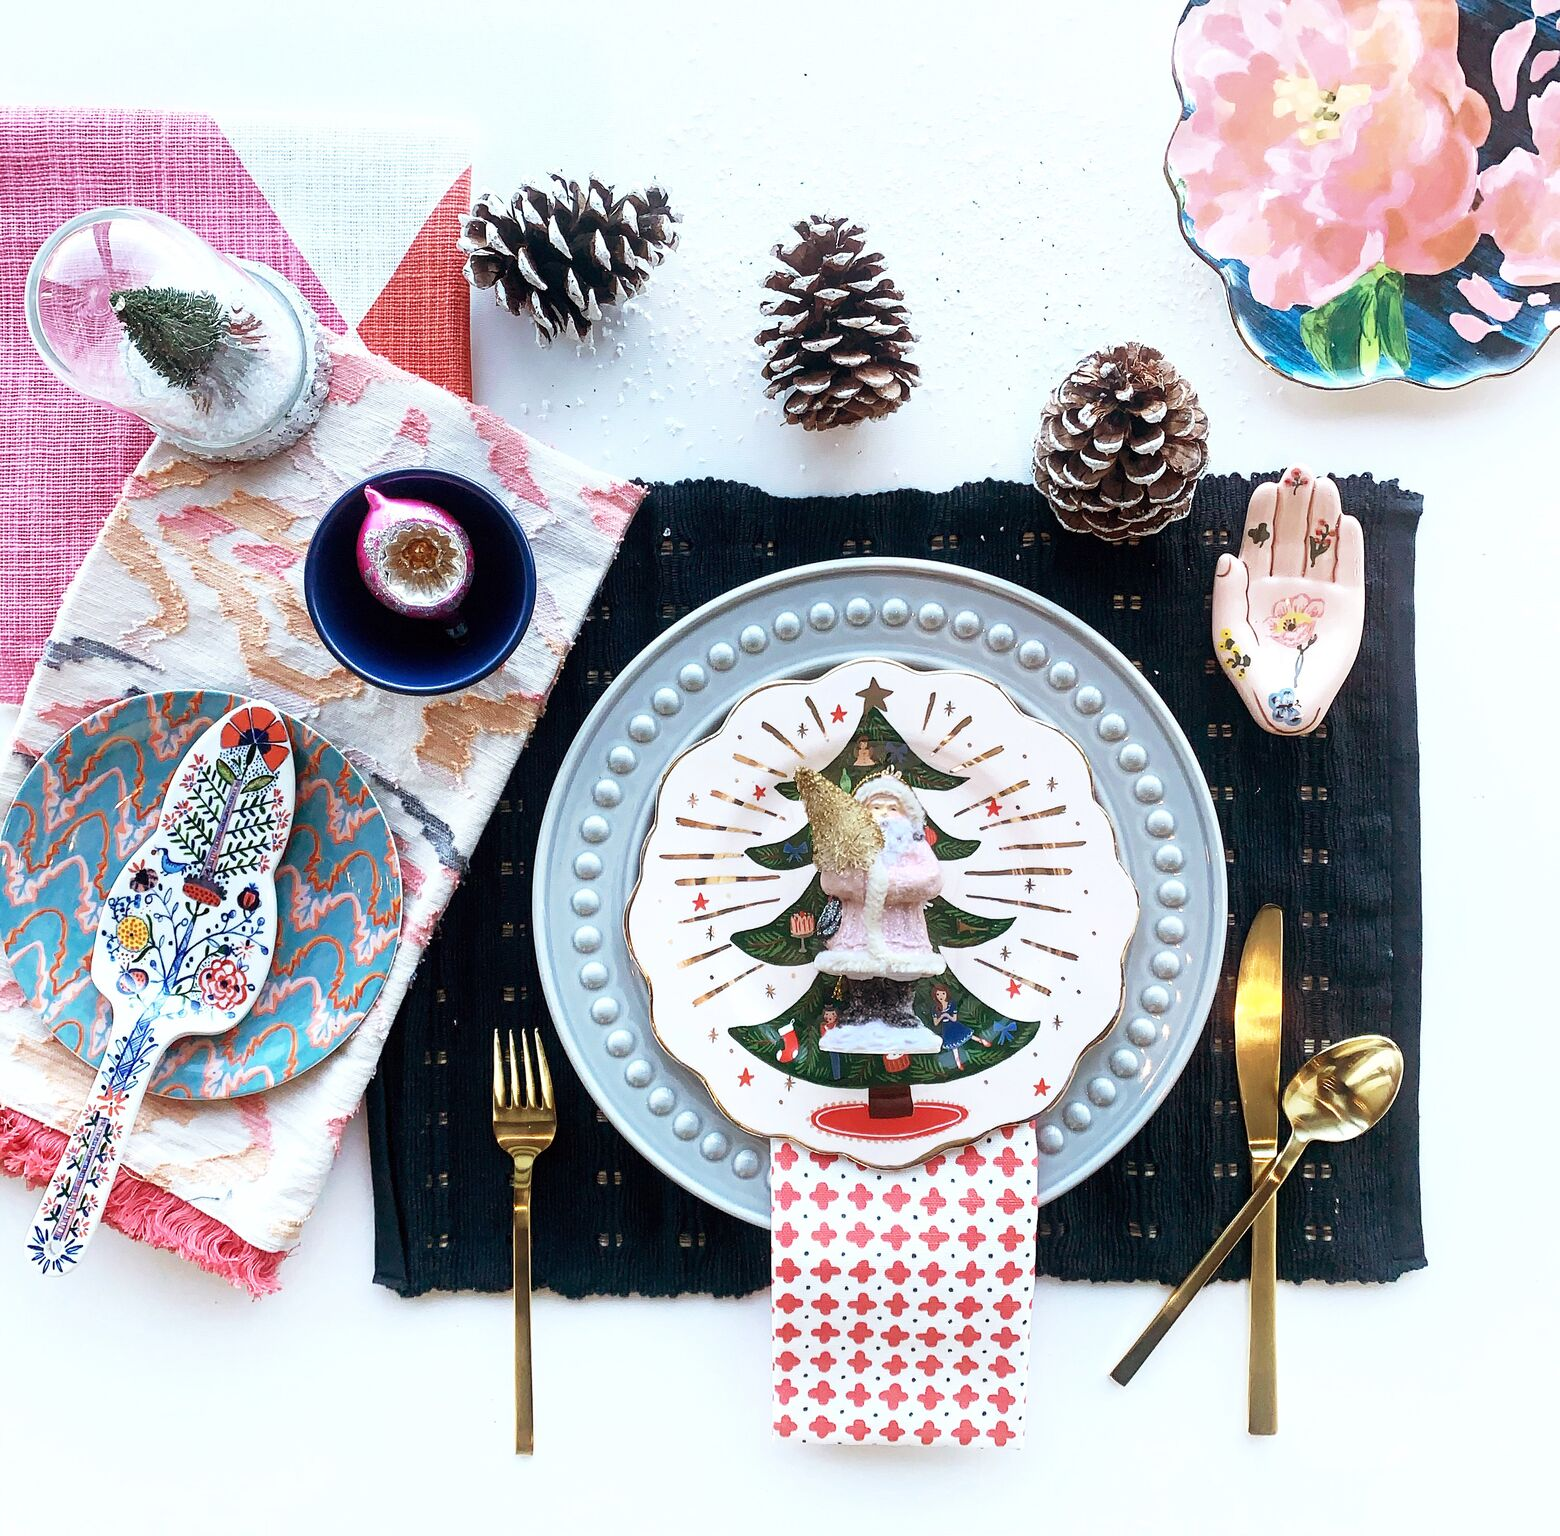 leanne bunnell interiors calgary unconventional christmas colours pink blue patterns floral pine cones